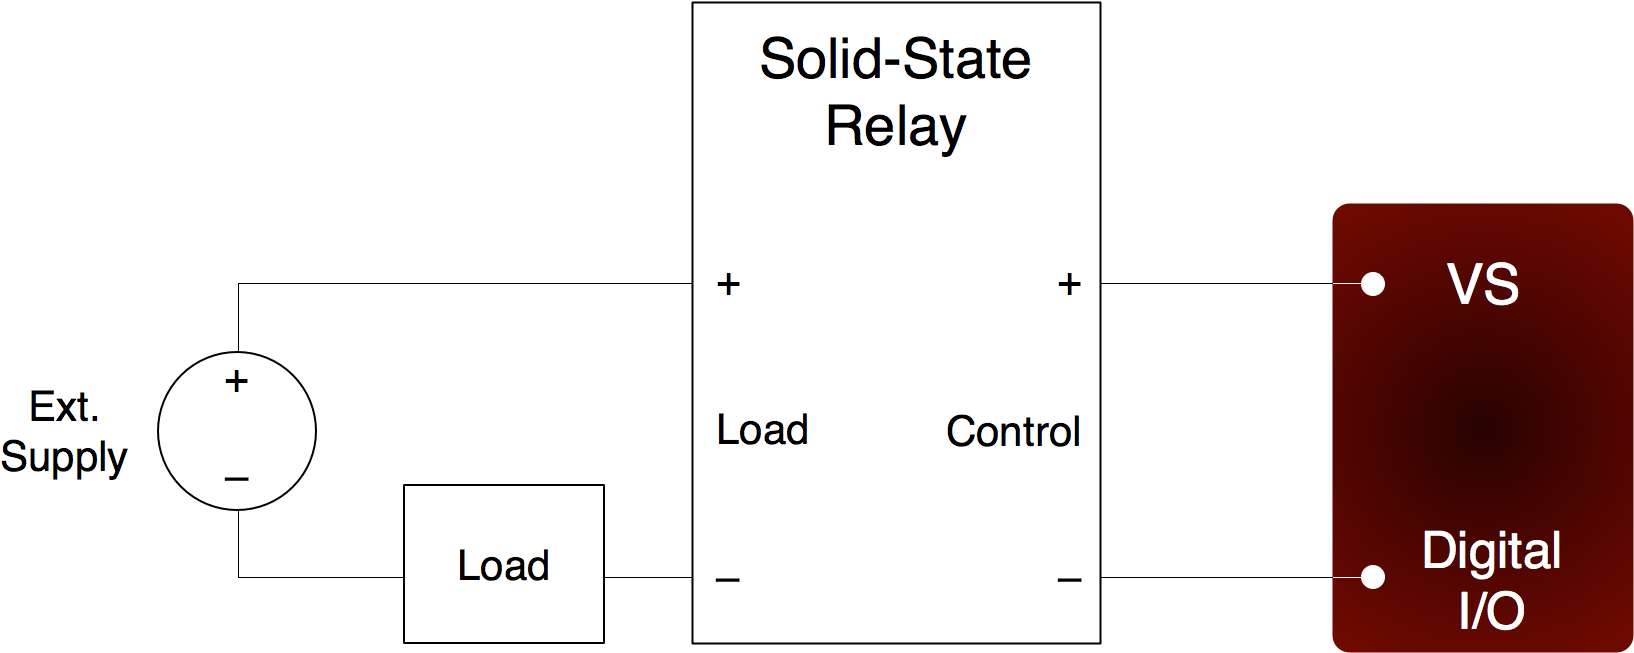 Controlling Relays App Note Labjack Ssr Wiring Diagram Dc Using A Usb Ethernet Wifi Multifunction Daq Device To Control Solid State